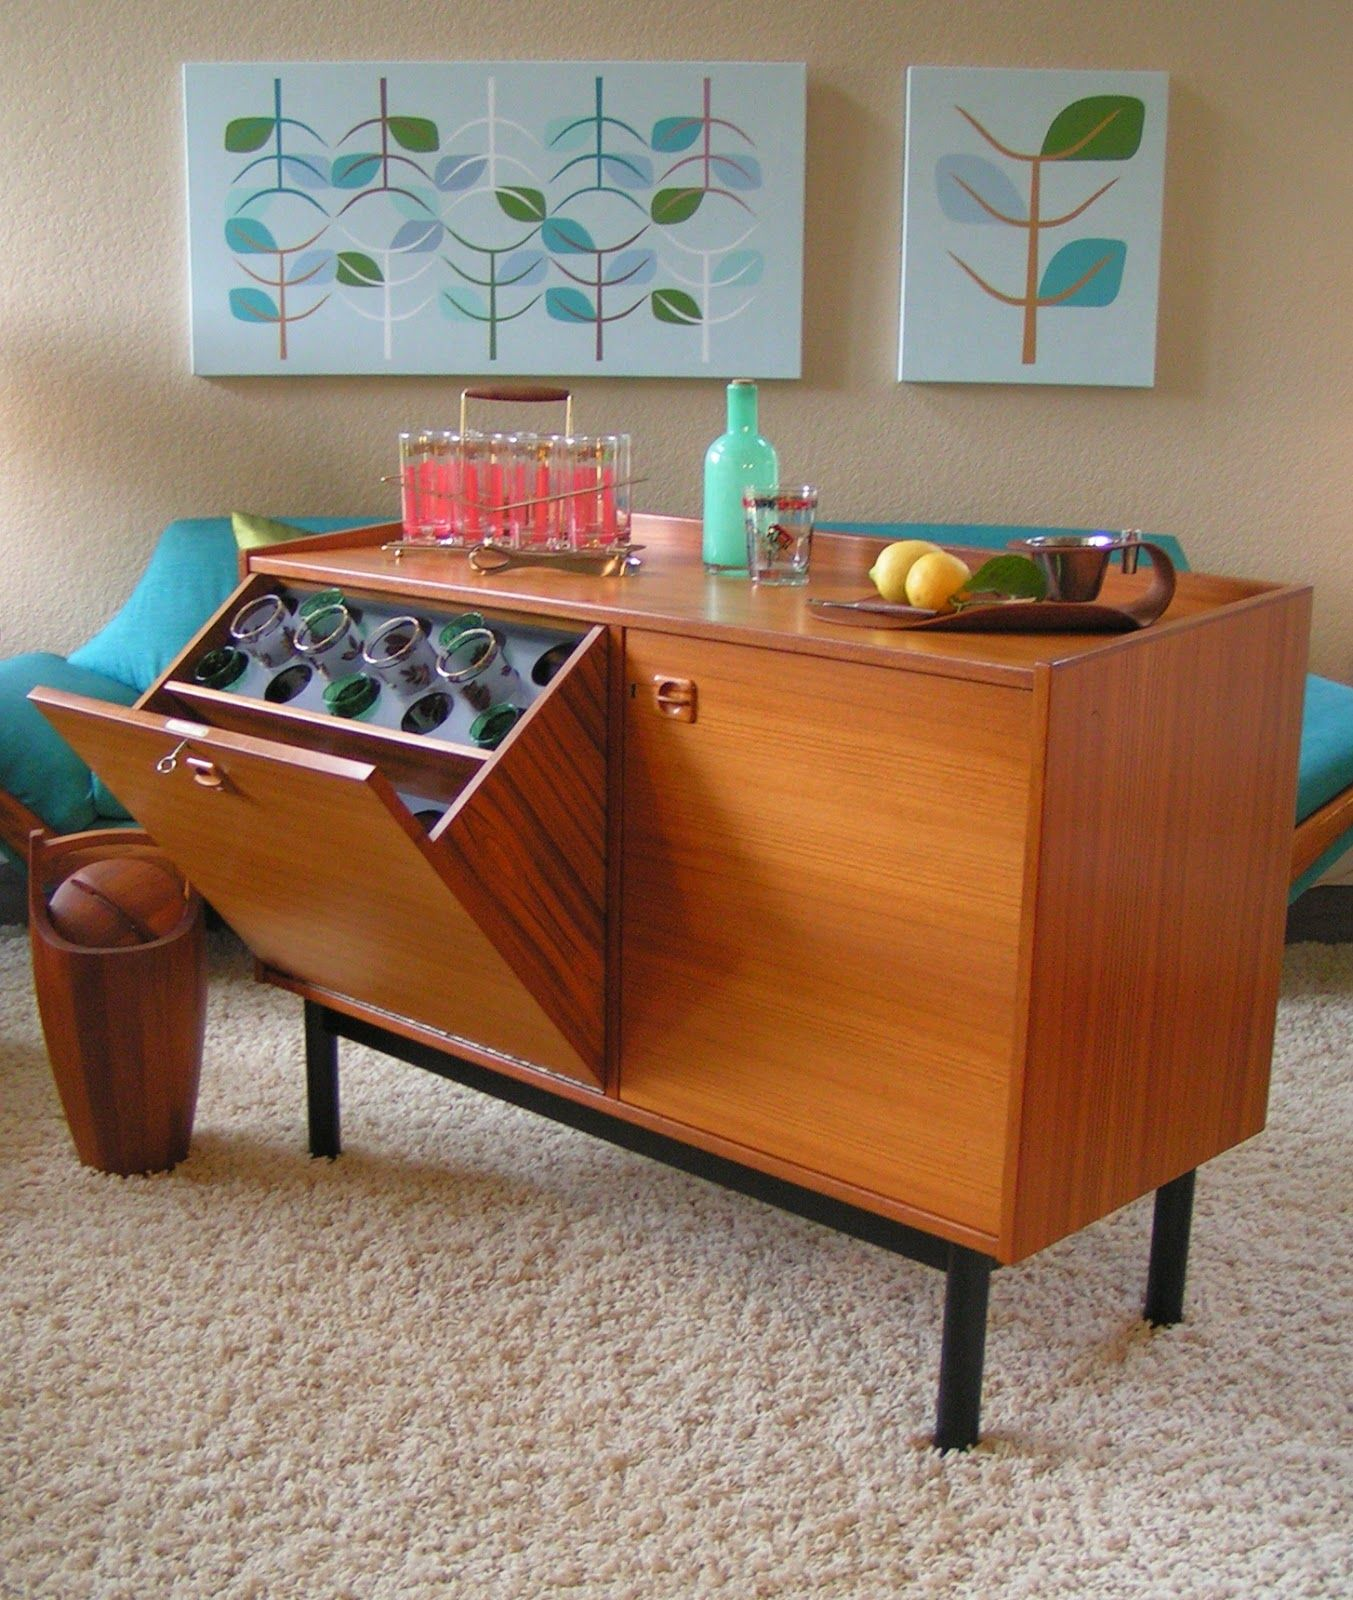 Mid Century Modern Danish Teak Sideboard Has A Tilt Open Bar Cabinet Like The Design But You